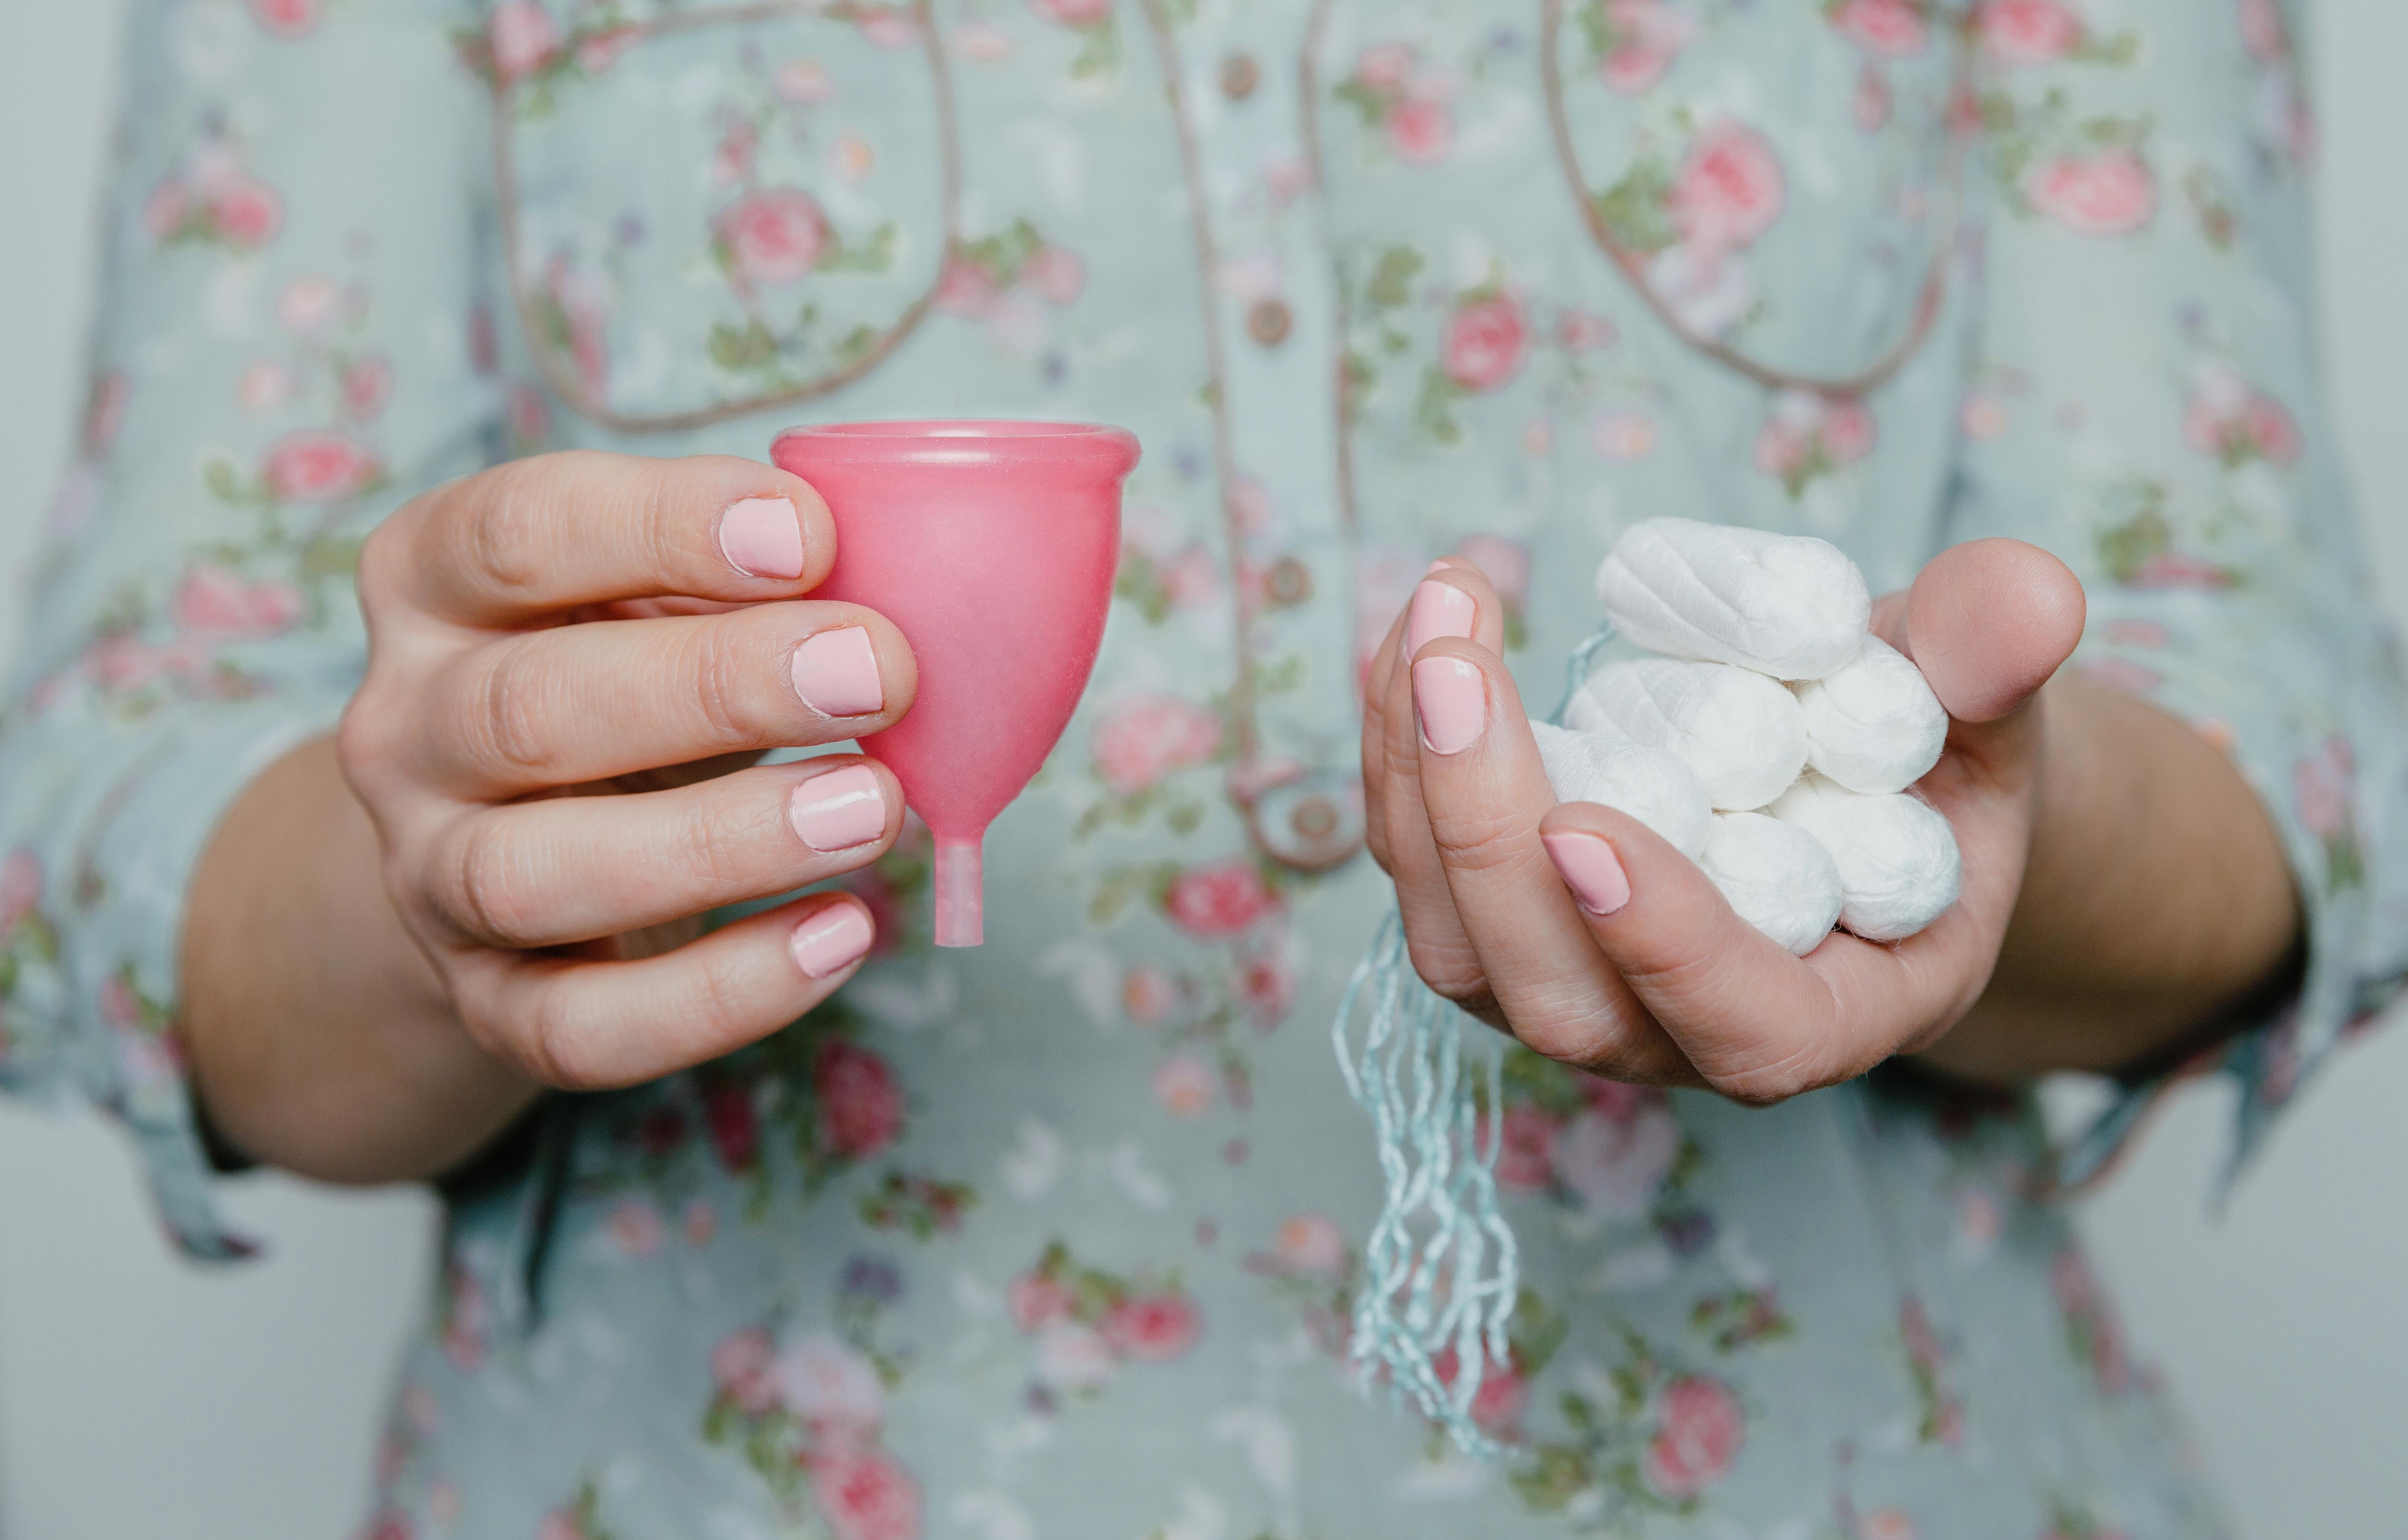 Virginia prisons ban visitors' tampons and menstrual cups